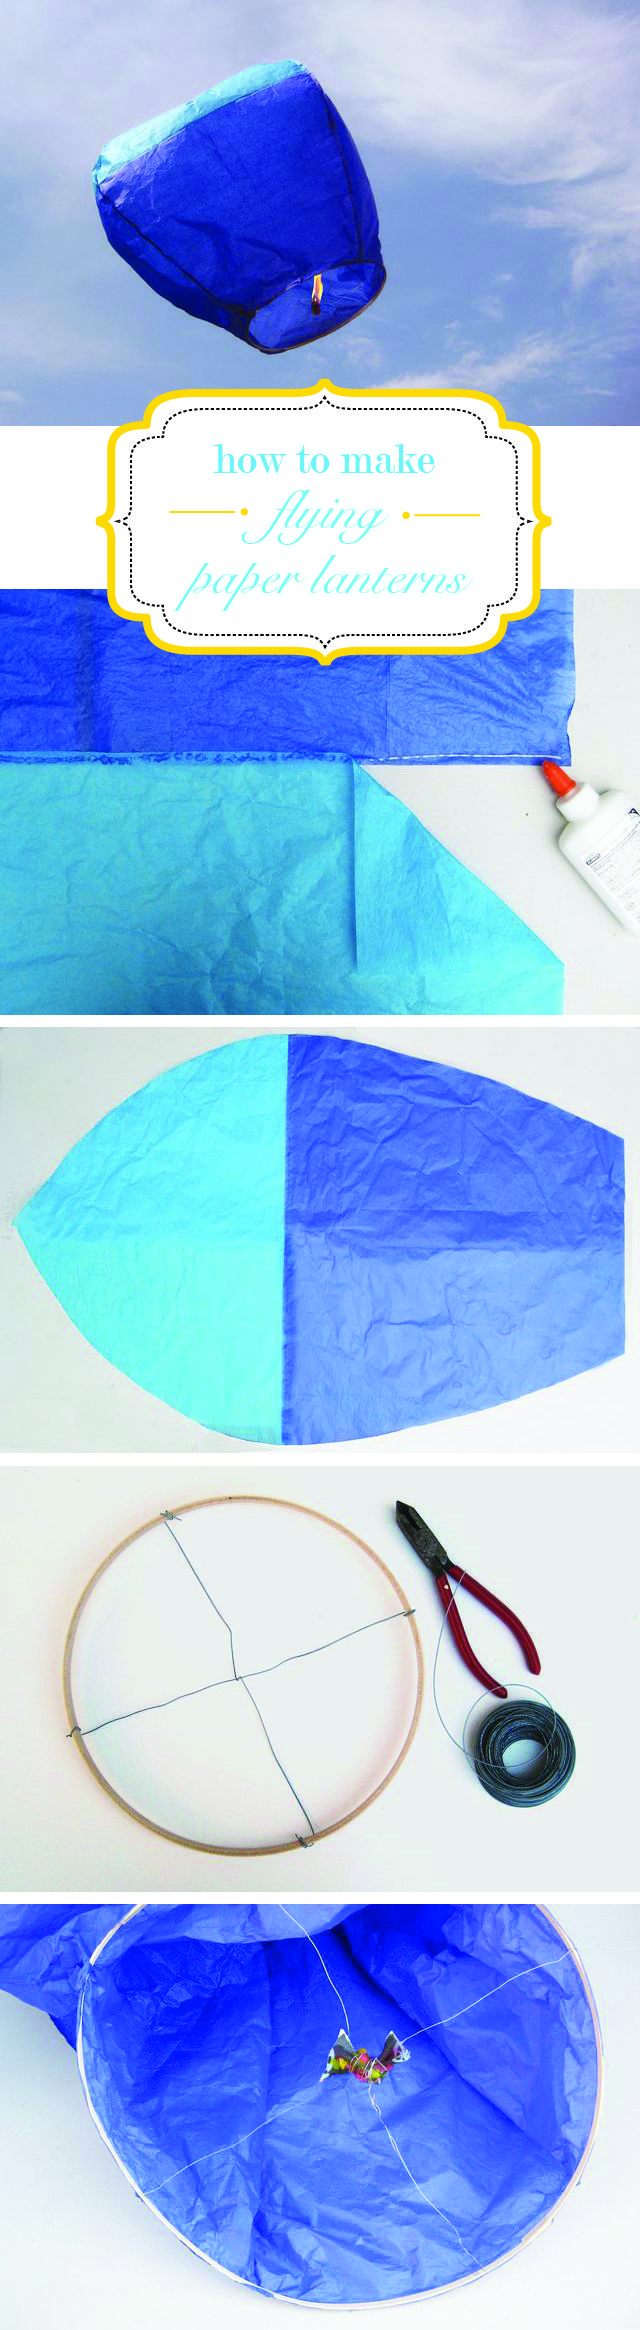 DIY your own flying paper lanterns!  The kids will love this. www.ehow.com/...